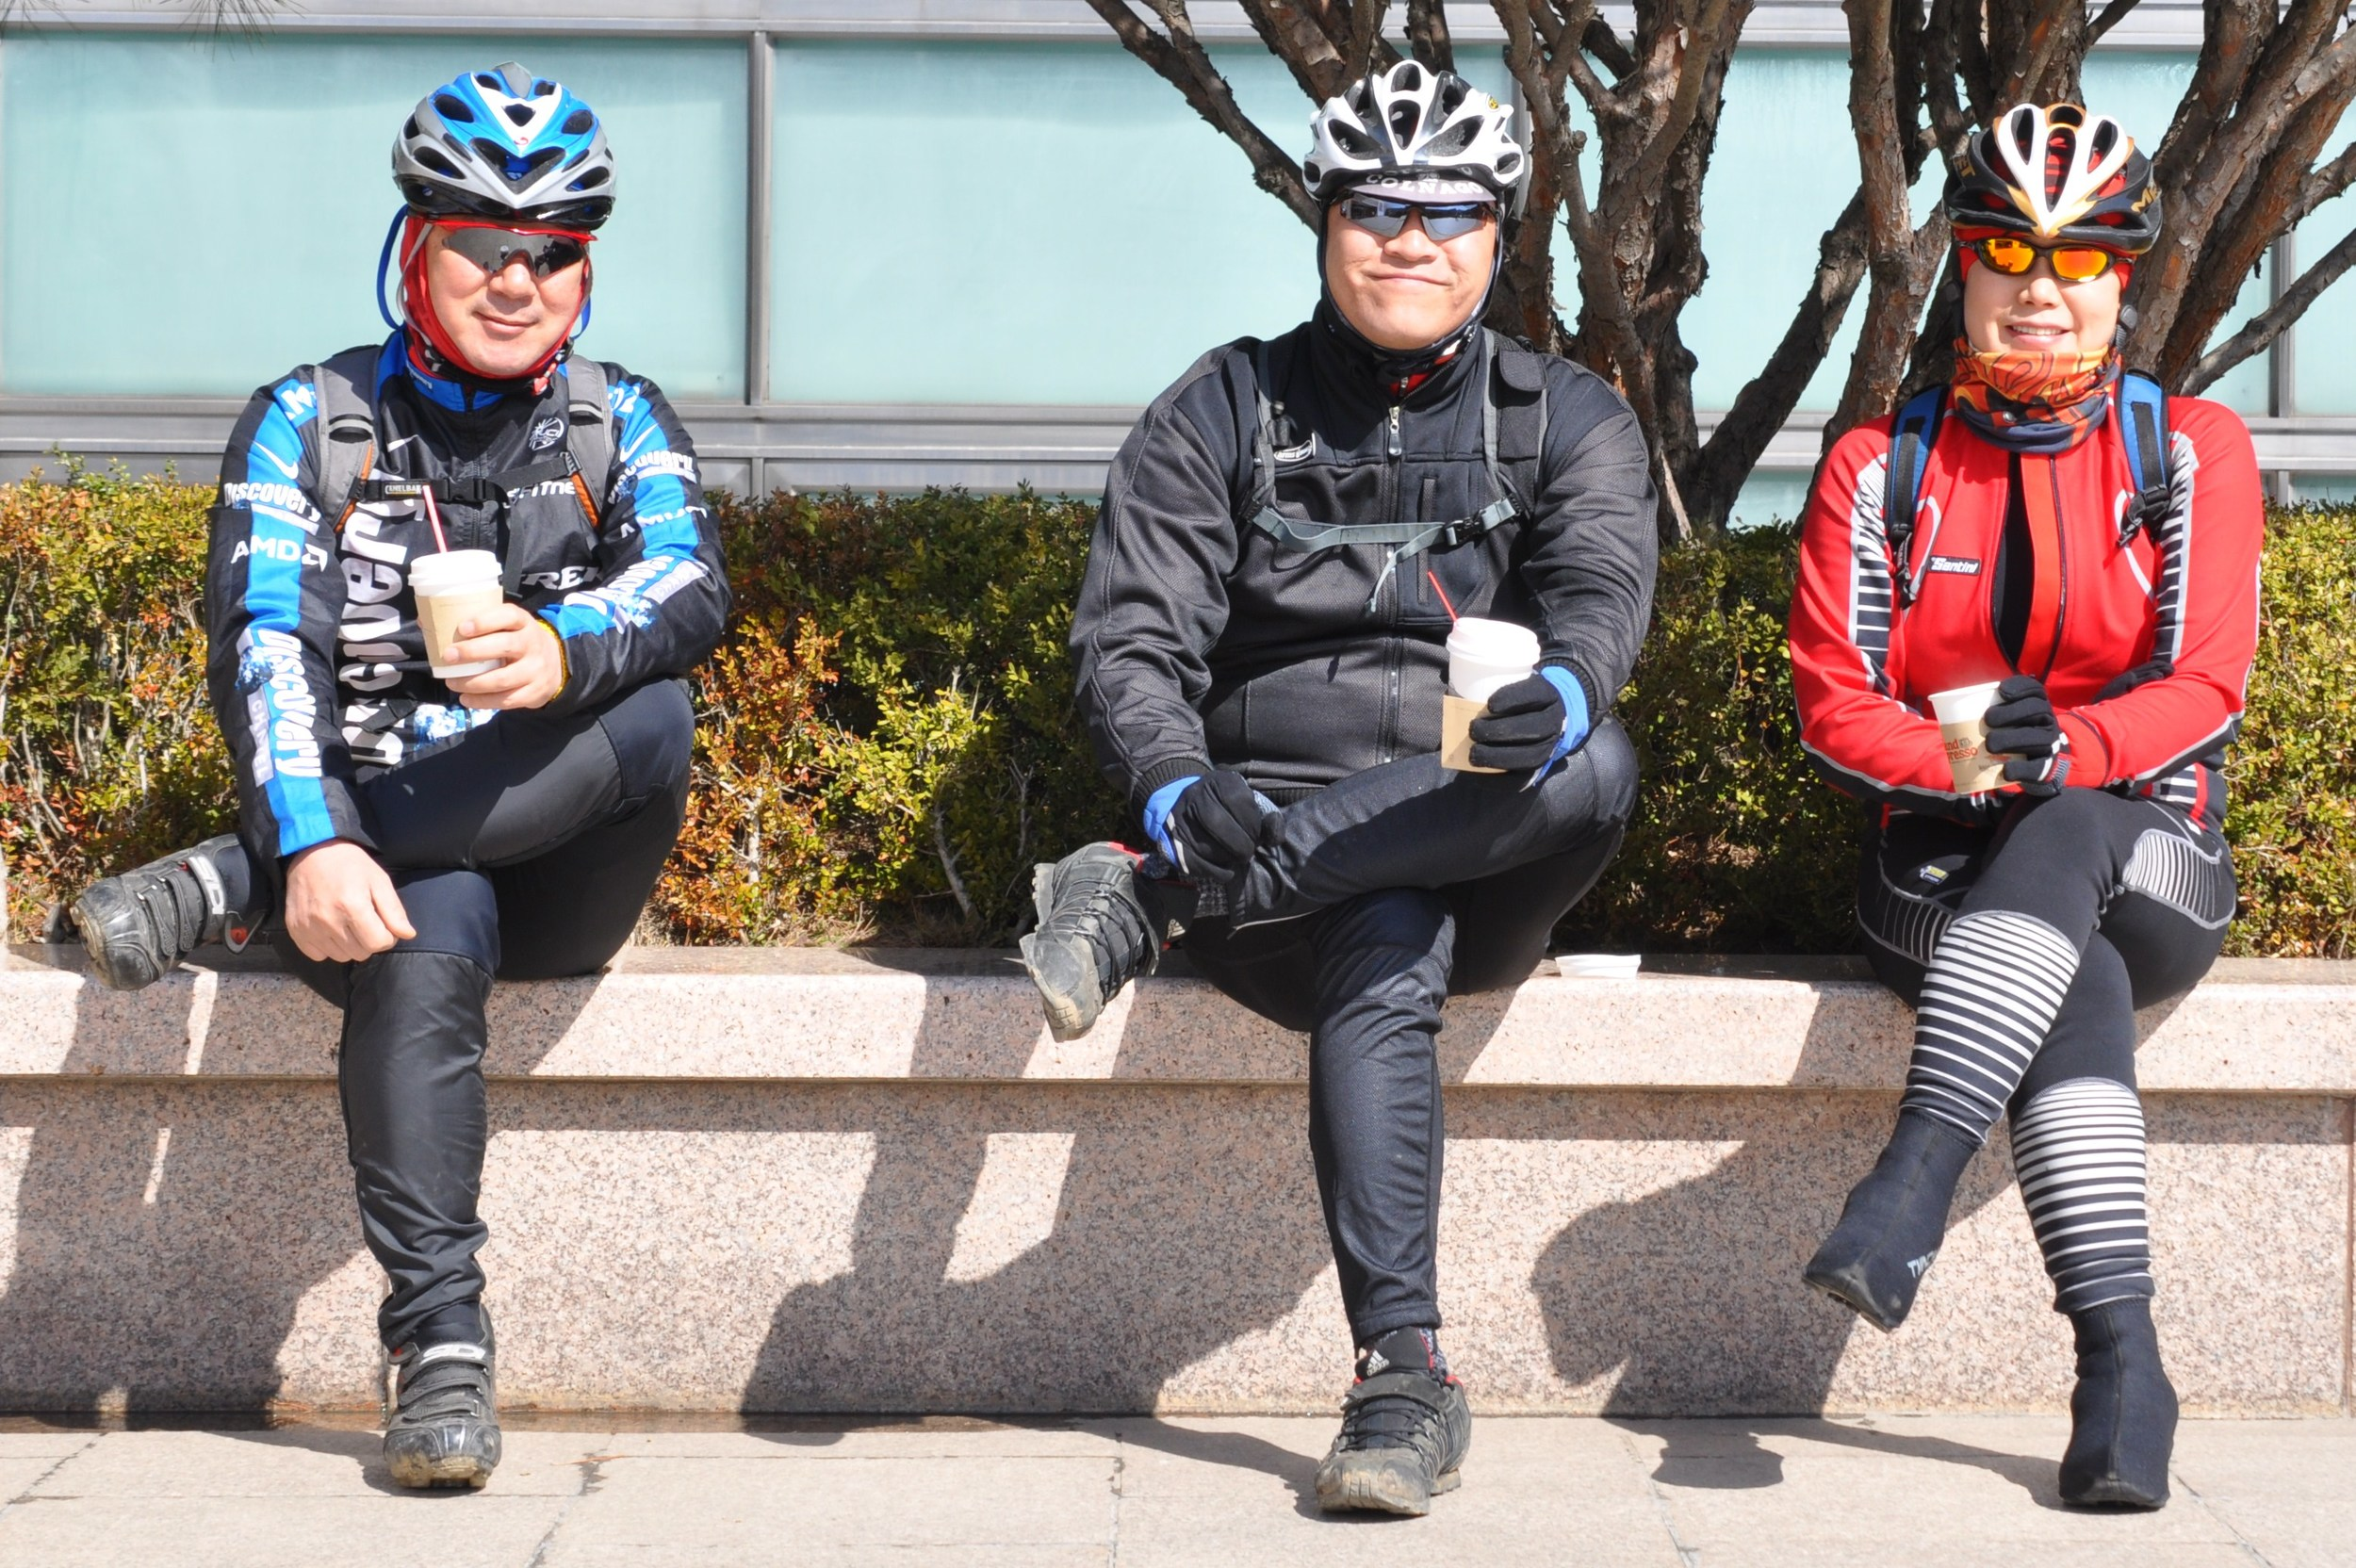 Koreans don't do things halfway. Going for a bike ride? Better get your gear.